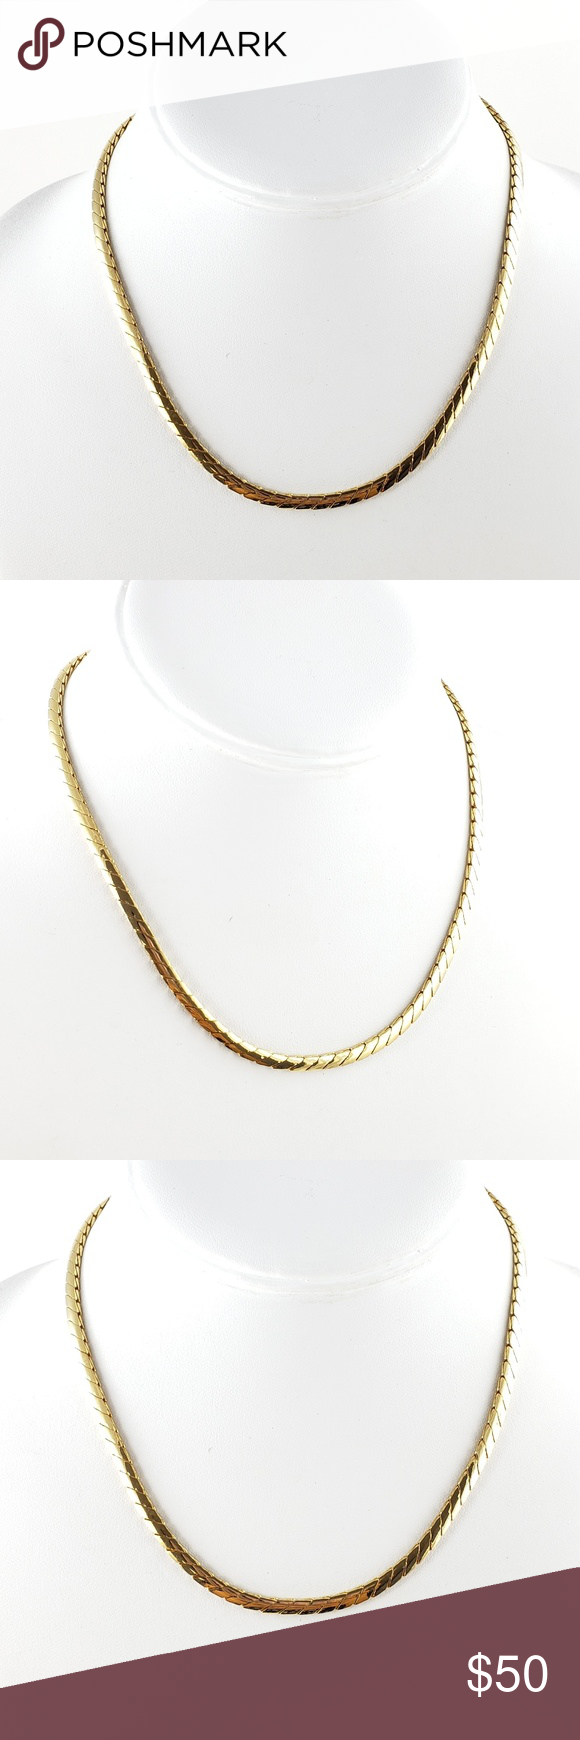 Merlite Jewerly : merlite, jewerly, Merlite, Necklace, Smooth, Chain, Necklace,